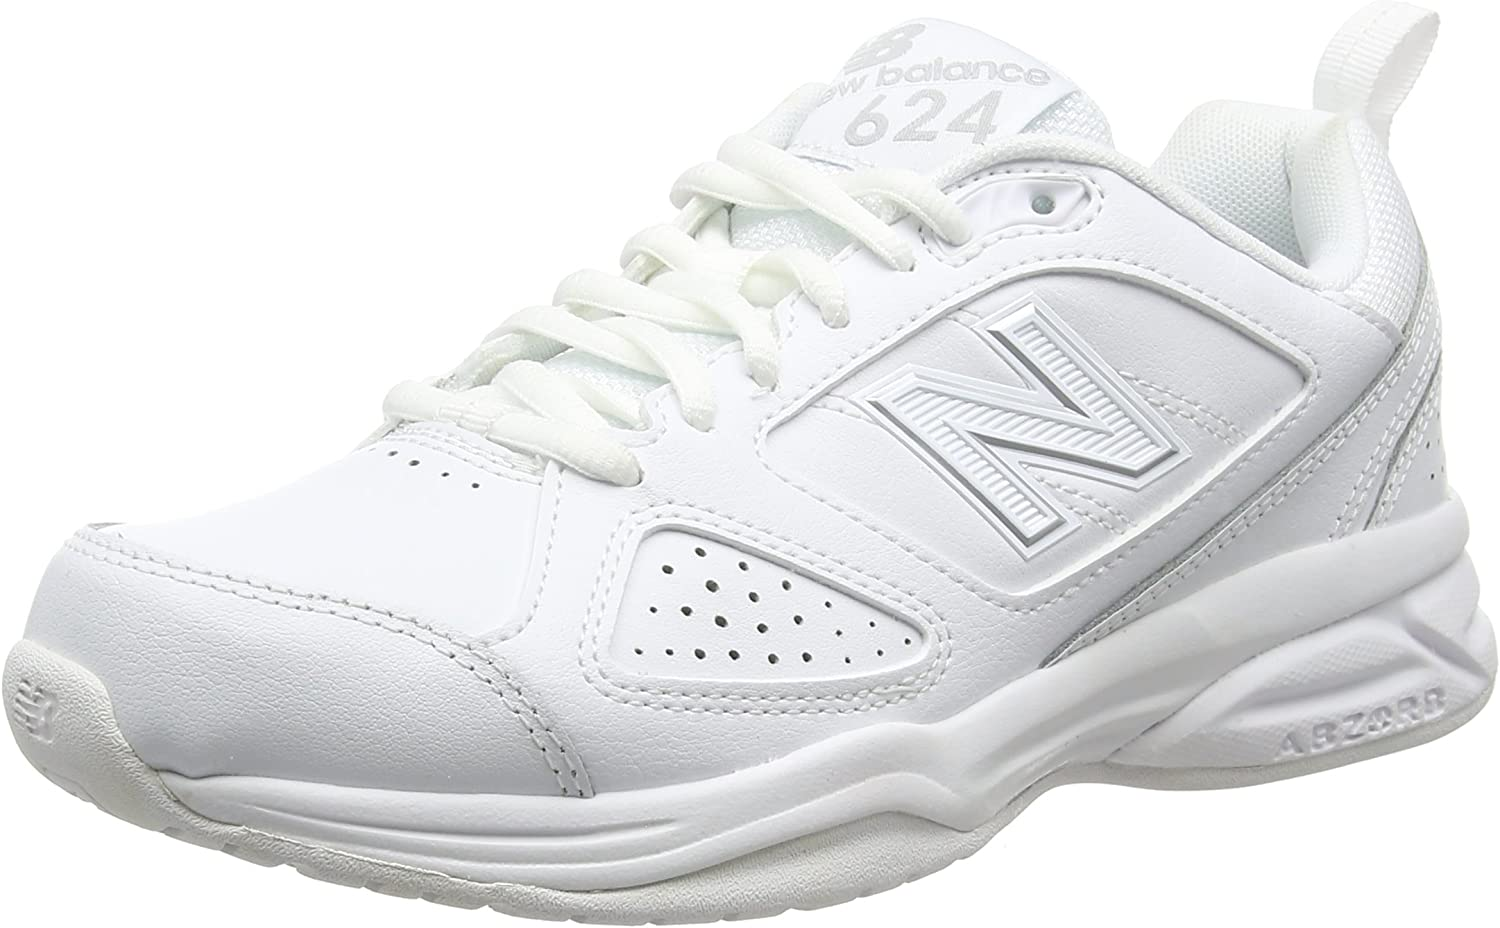 New Balance WX624v4 Women's Cross Zapatillas De Entrenamiento - AW18